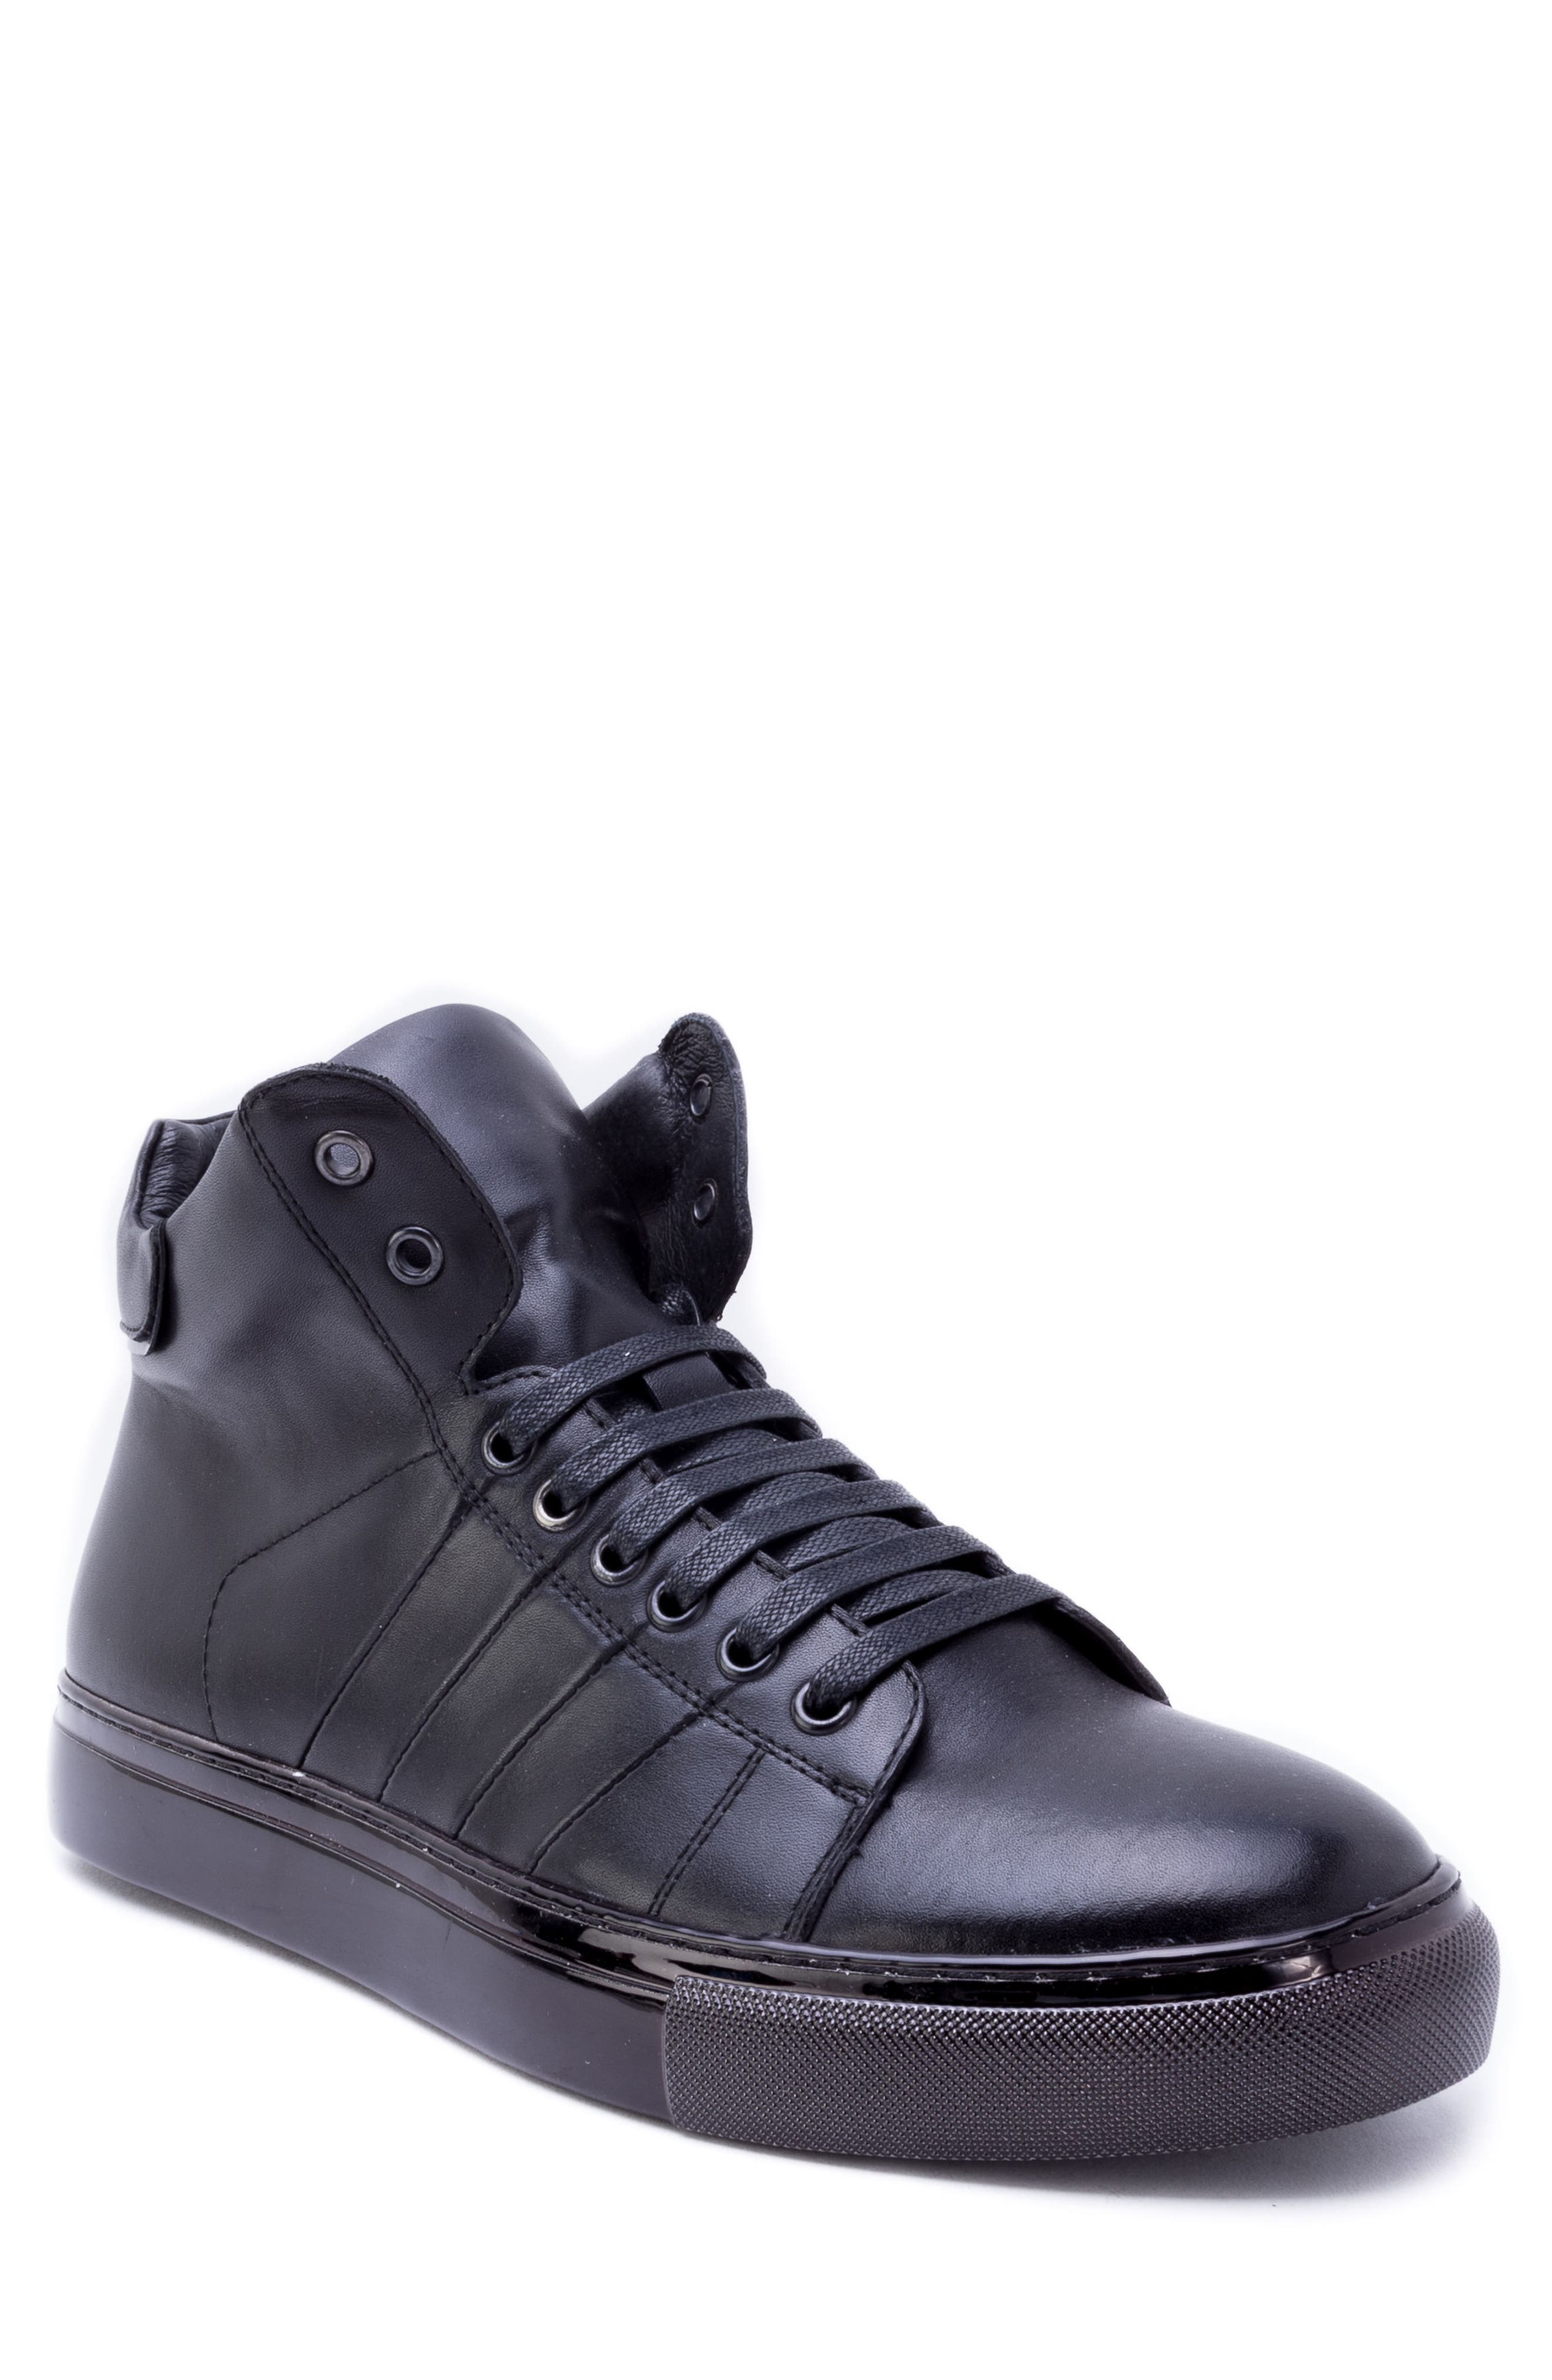 Crosby Sneaker,                             Main thumbnail 1, color,                             BLACK LEATHER